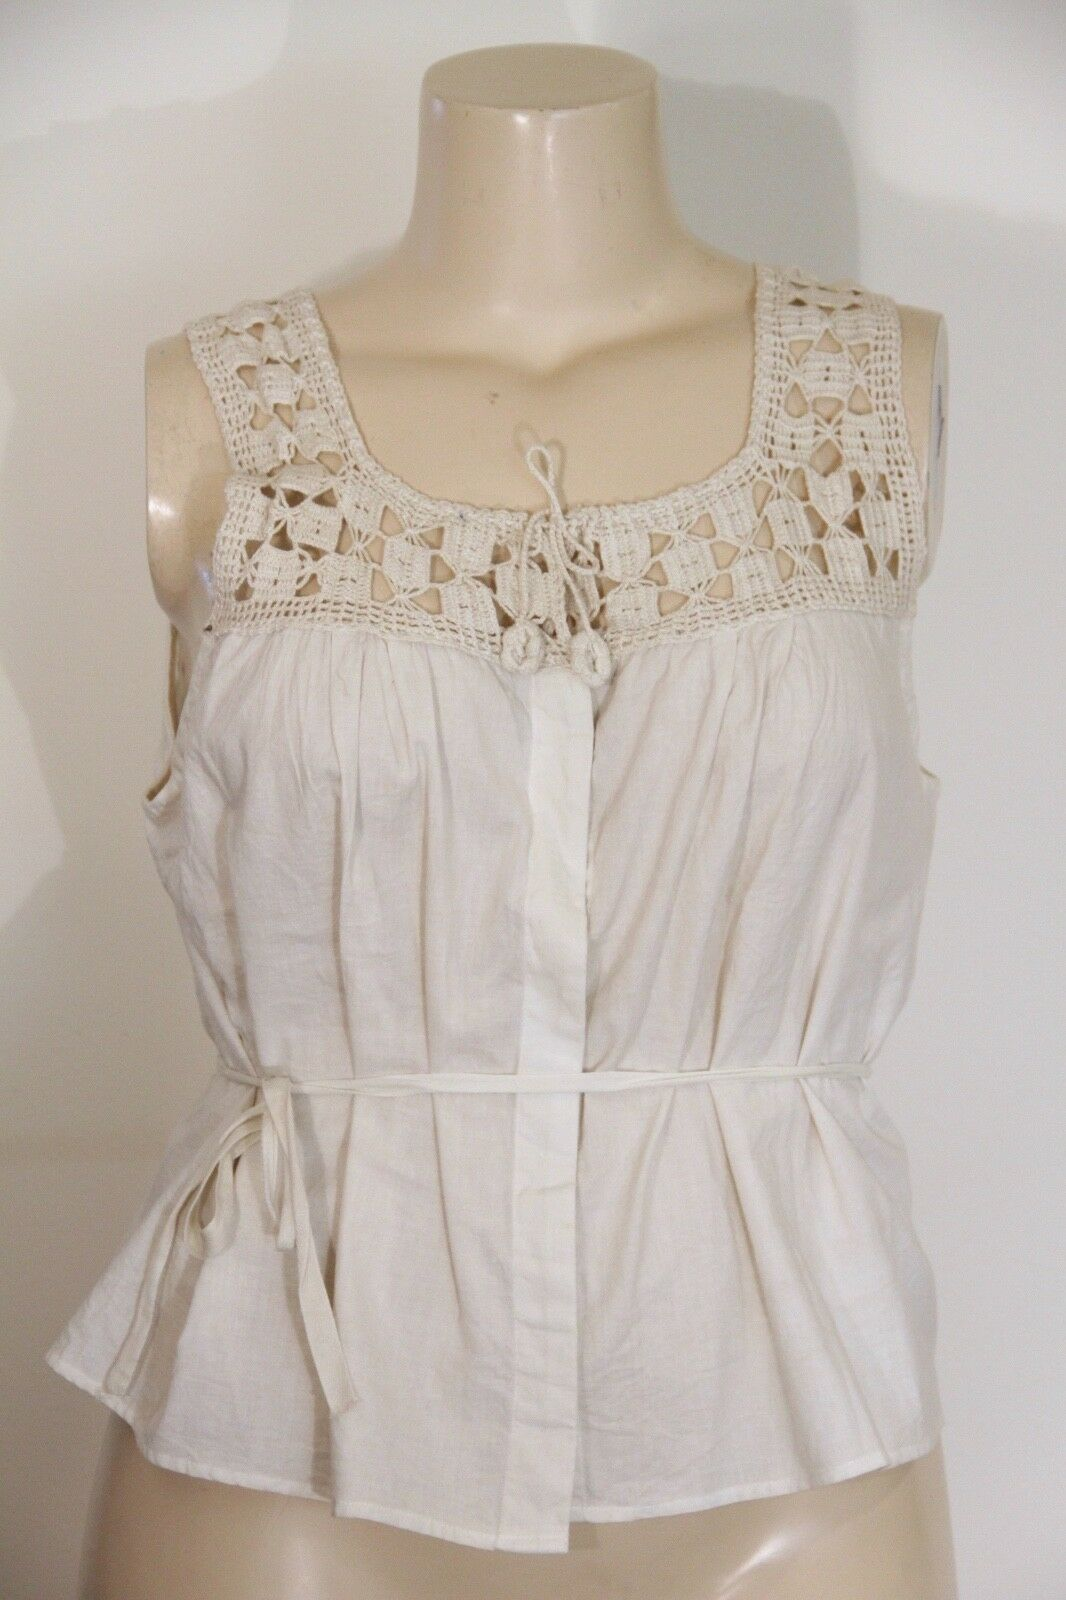 NEW - MAGNOLIA PEARL - CROCHETED YOKE COTTON BUTTON-DOWN TOP WITH WAIST TIE